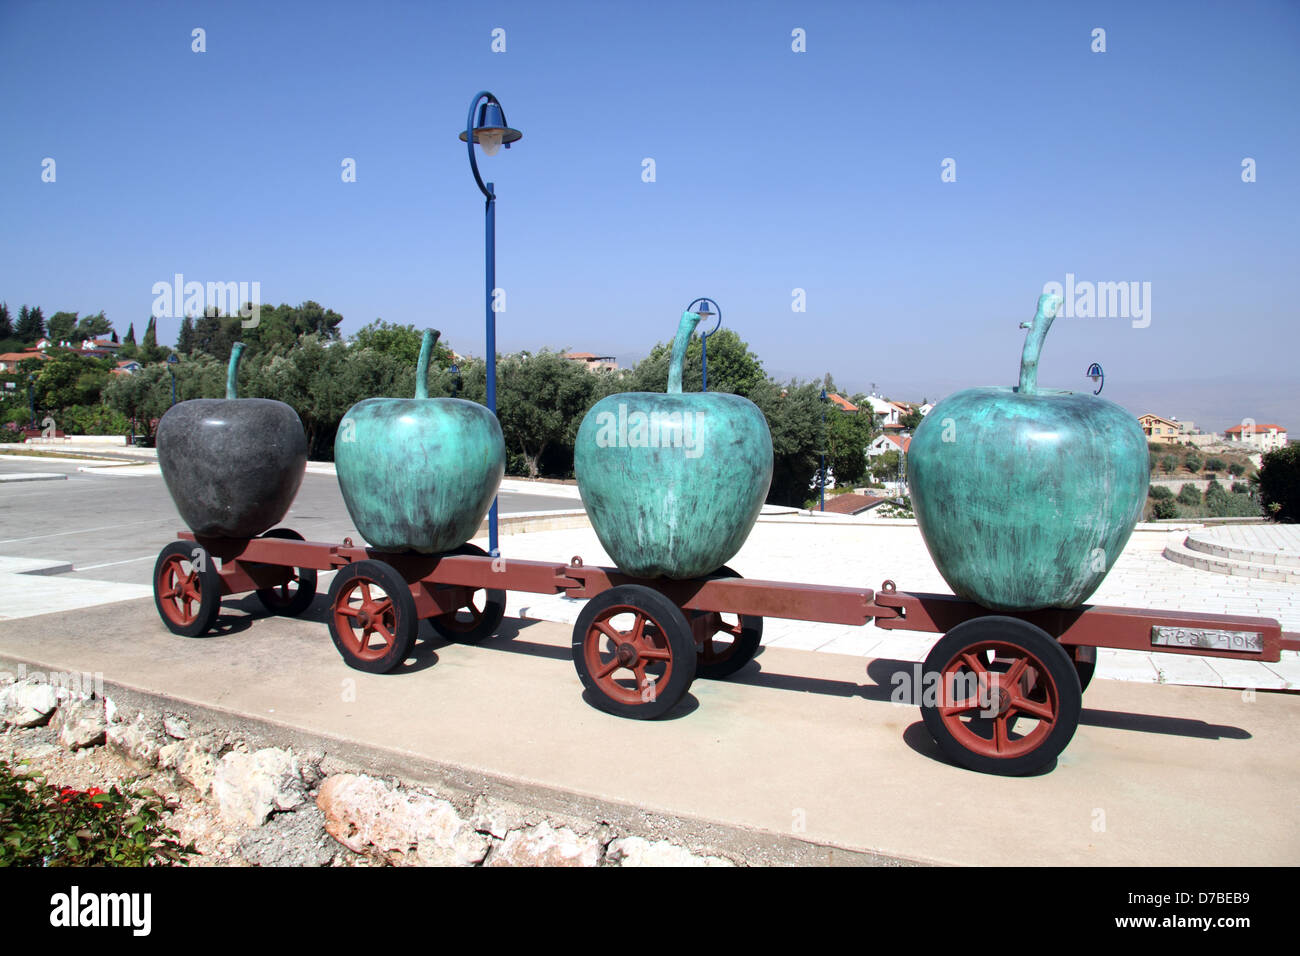 The Apples sculpture in Metula created by Avishai Taicher - Stock Image